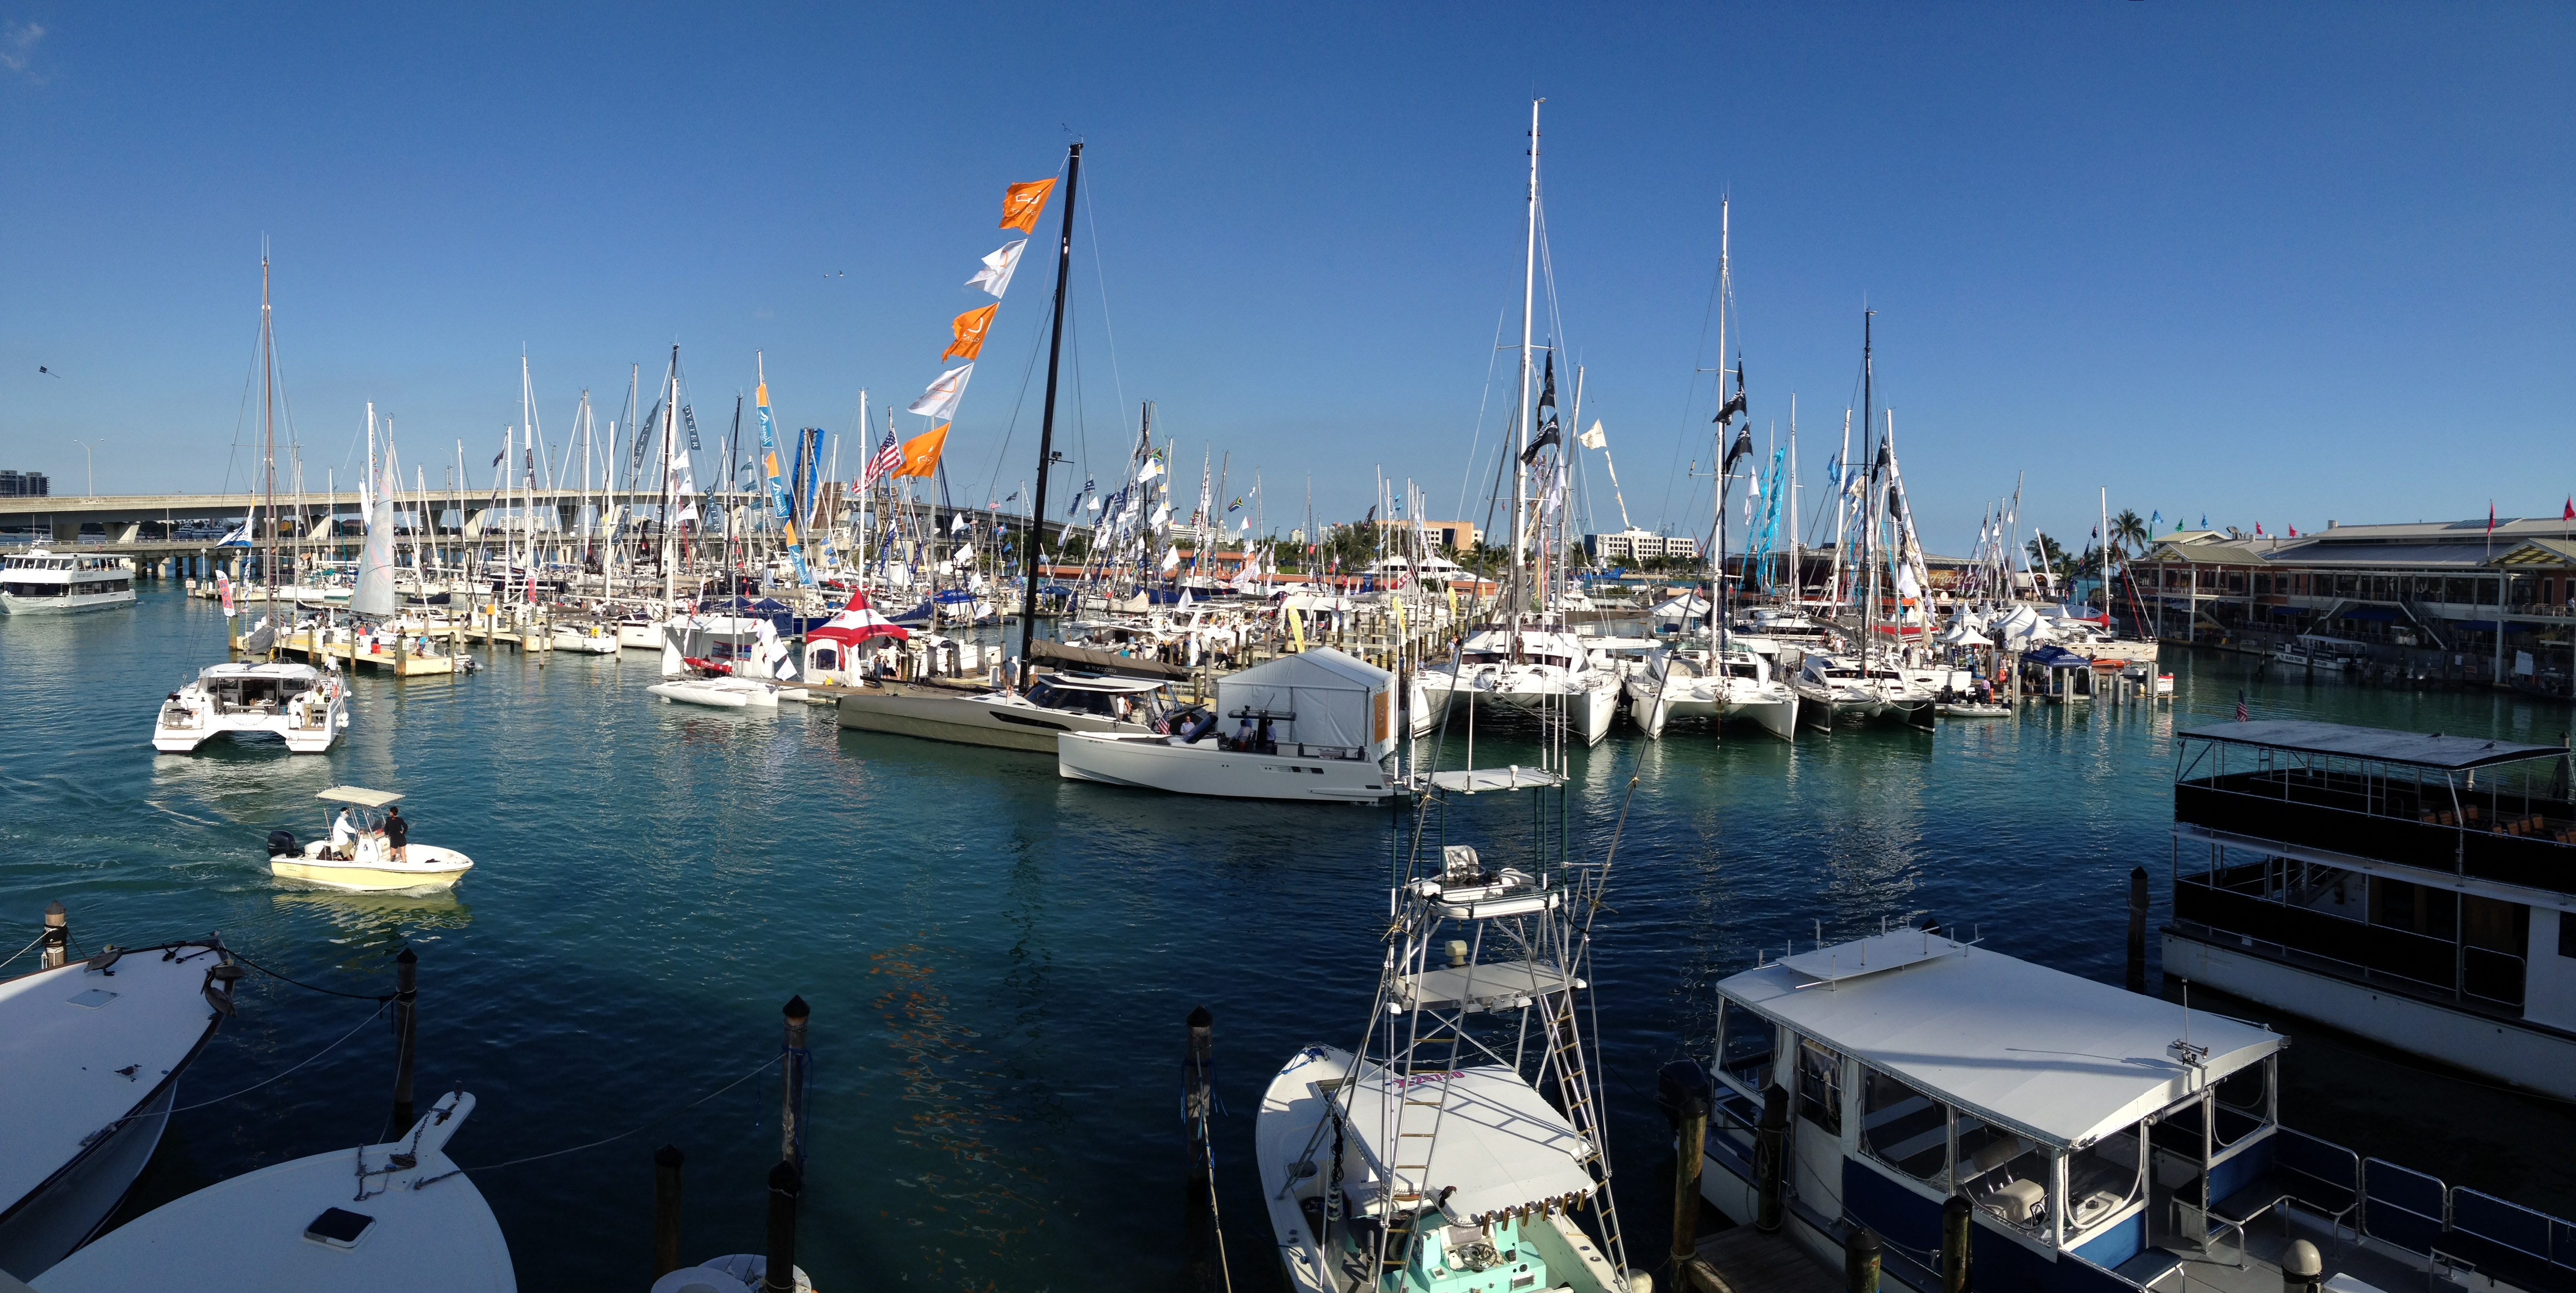 Hookey day at the miami boat show the sailing rode - Miami boat show ...